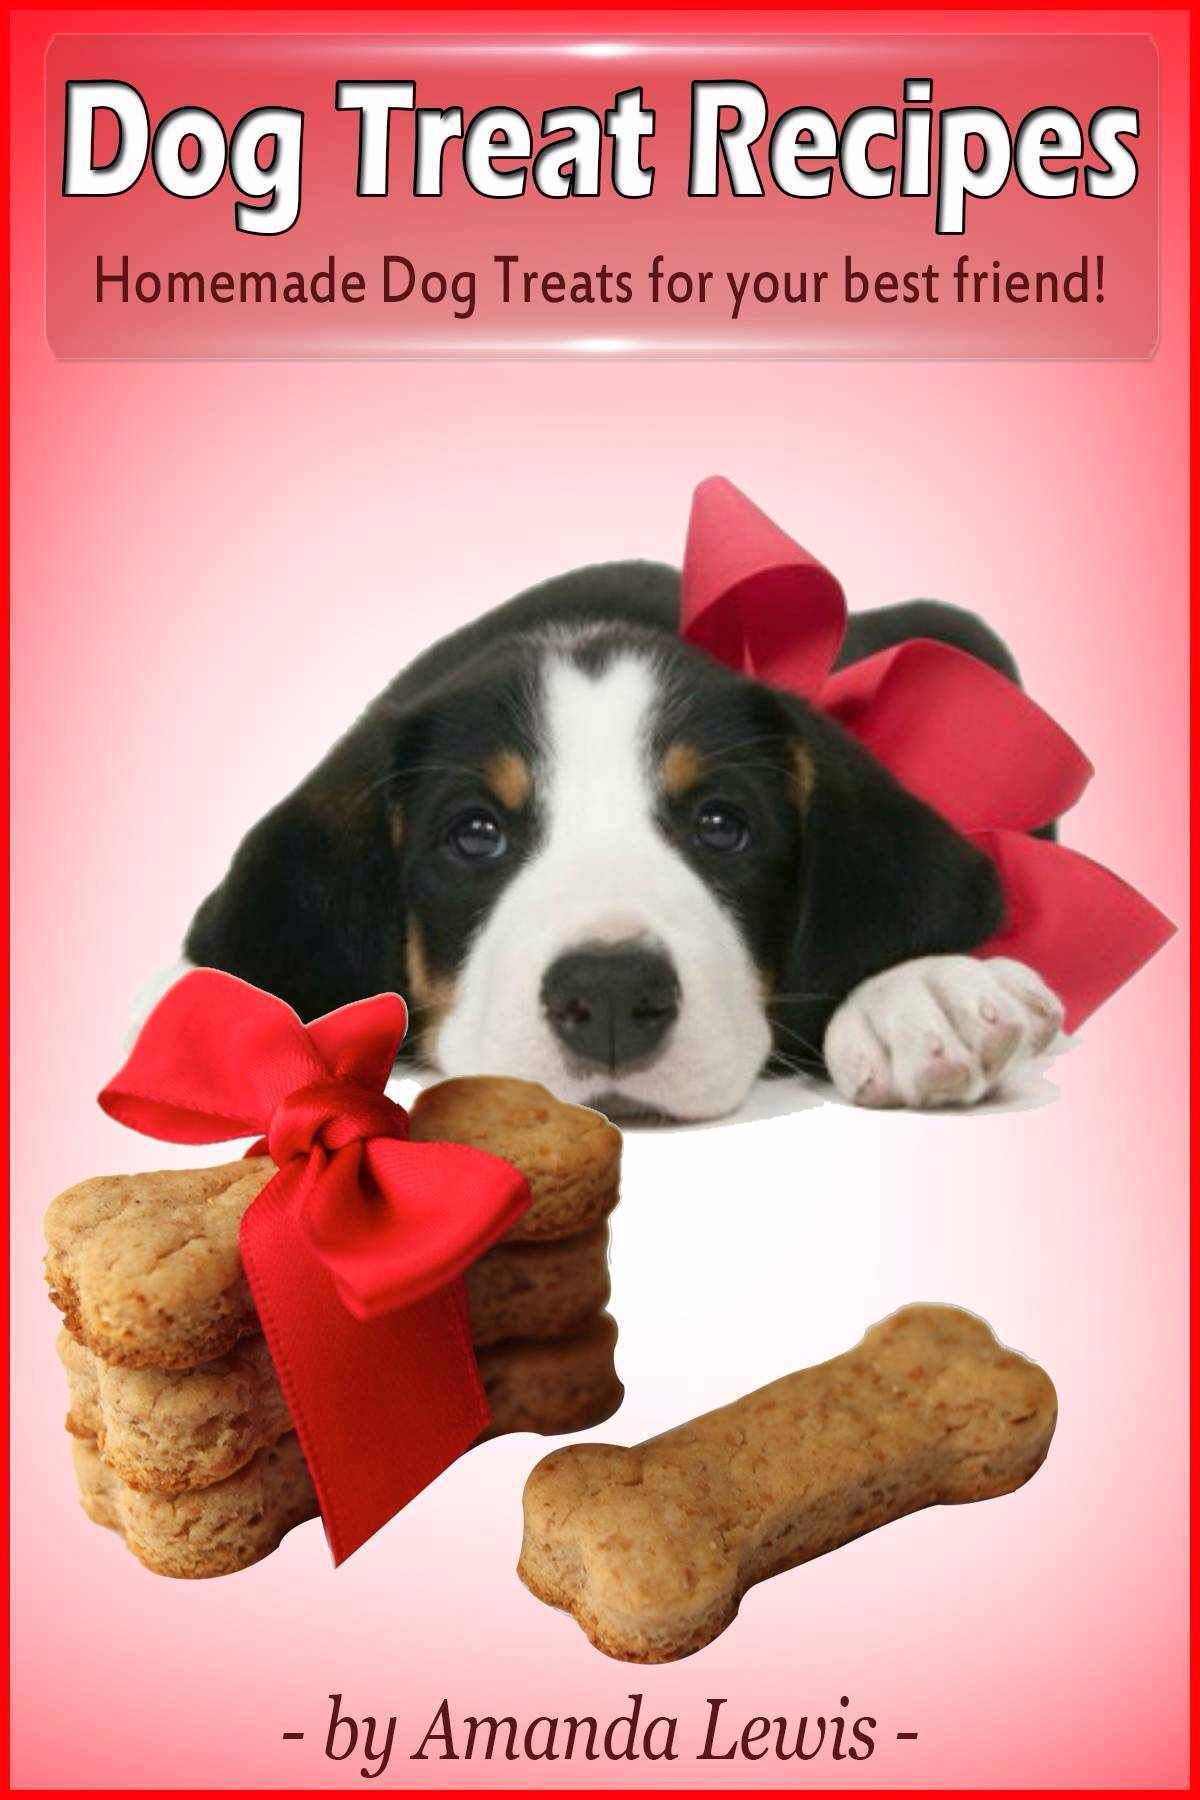 Dog Treat Recipes by Amanda Lewis brought to you by Professional Pet Sitting Etc.